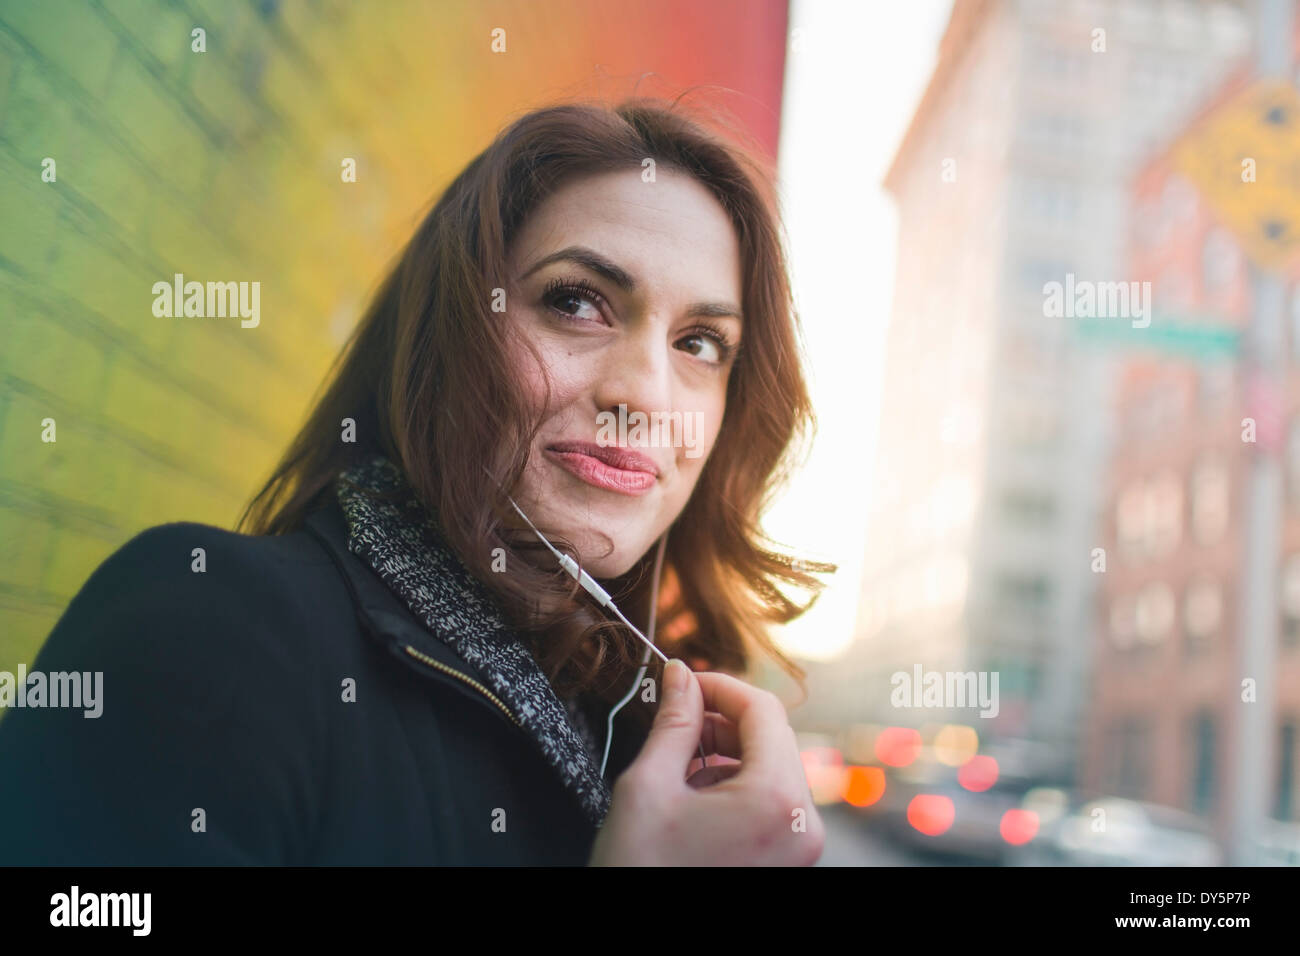 Young woman listening to earphones on city street - Stock Image